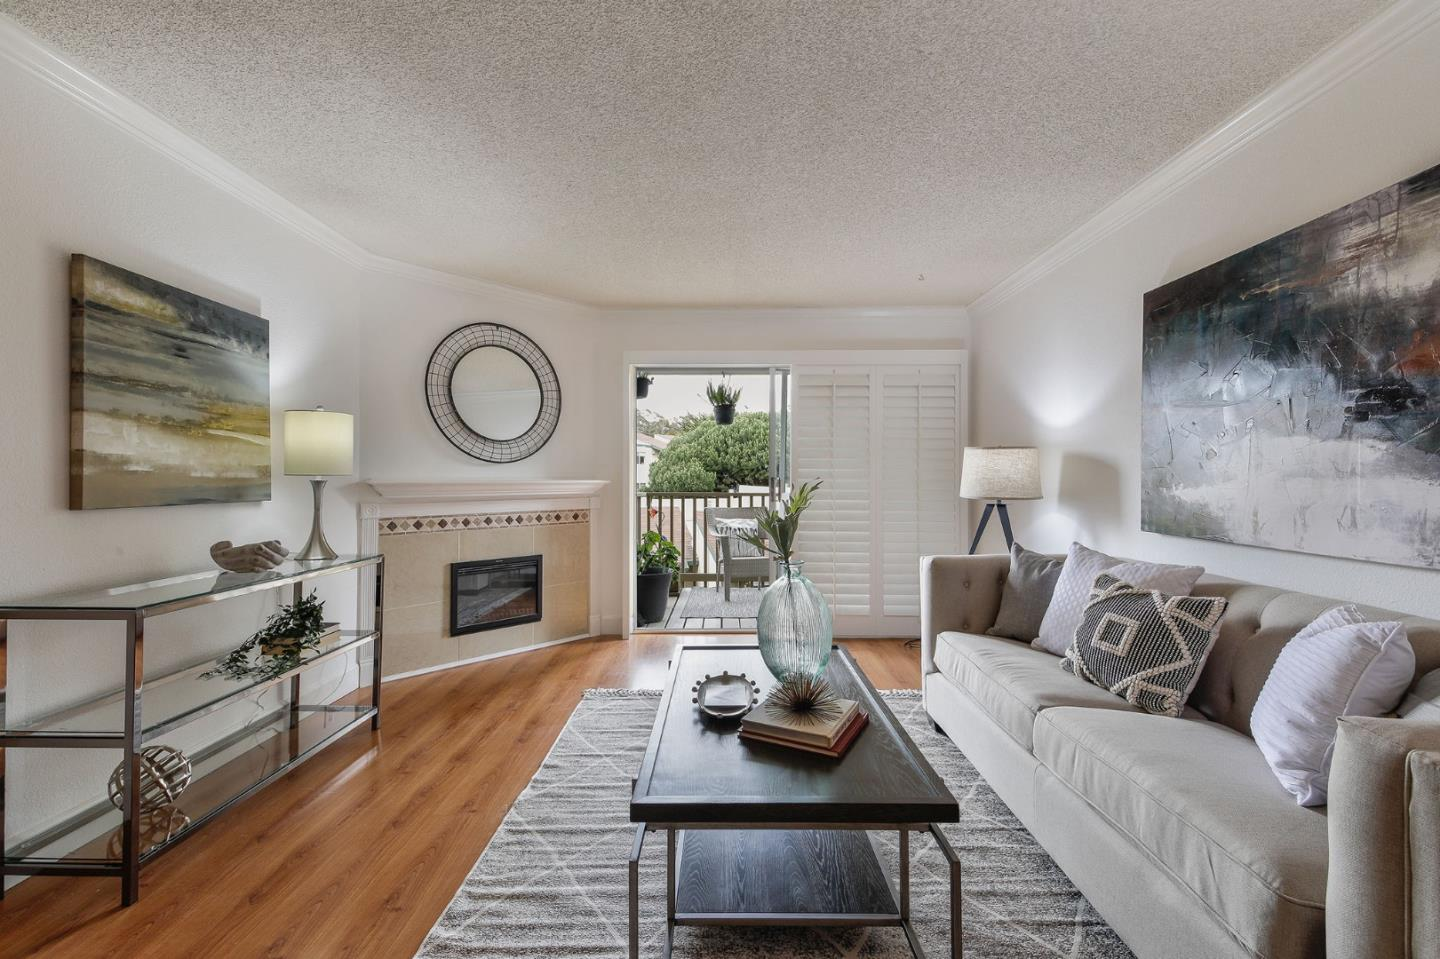 Image for 396 Imperial Way 207, <br>Daly City 94015